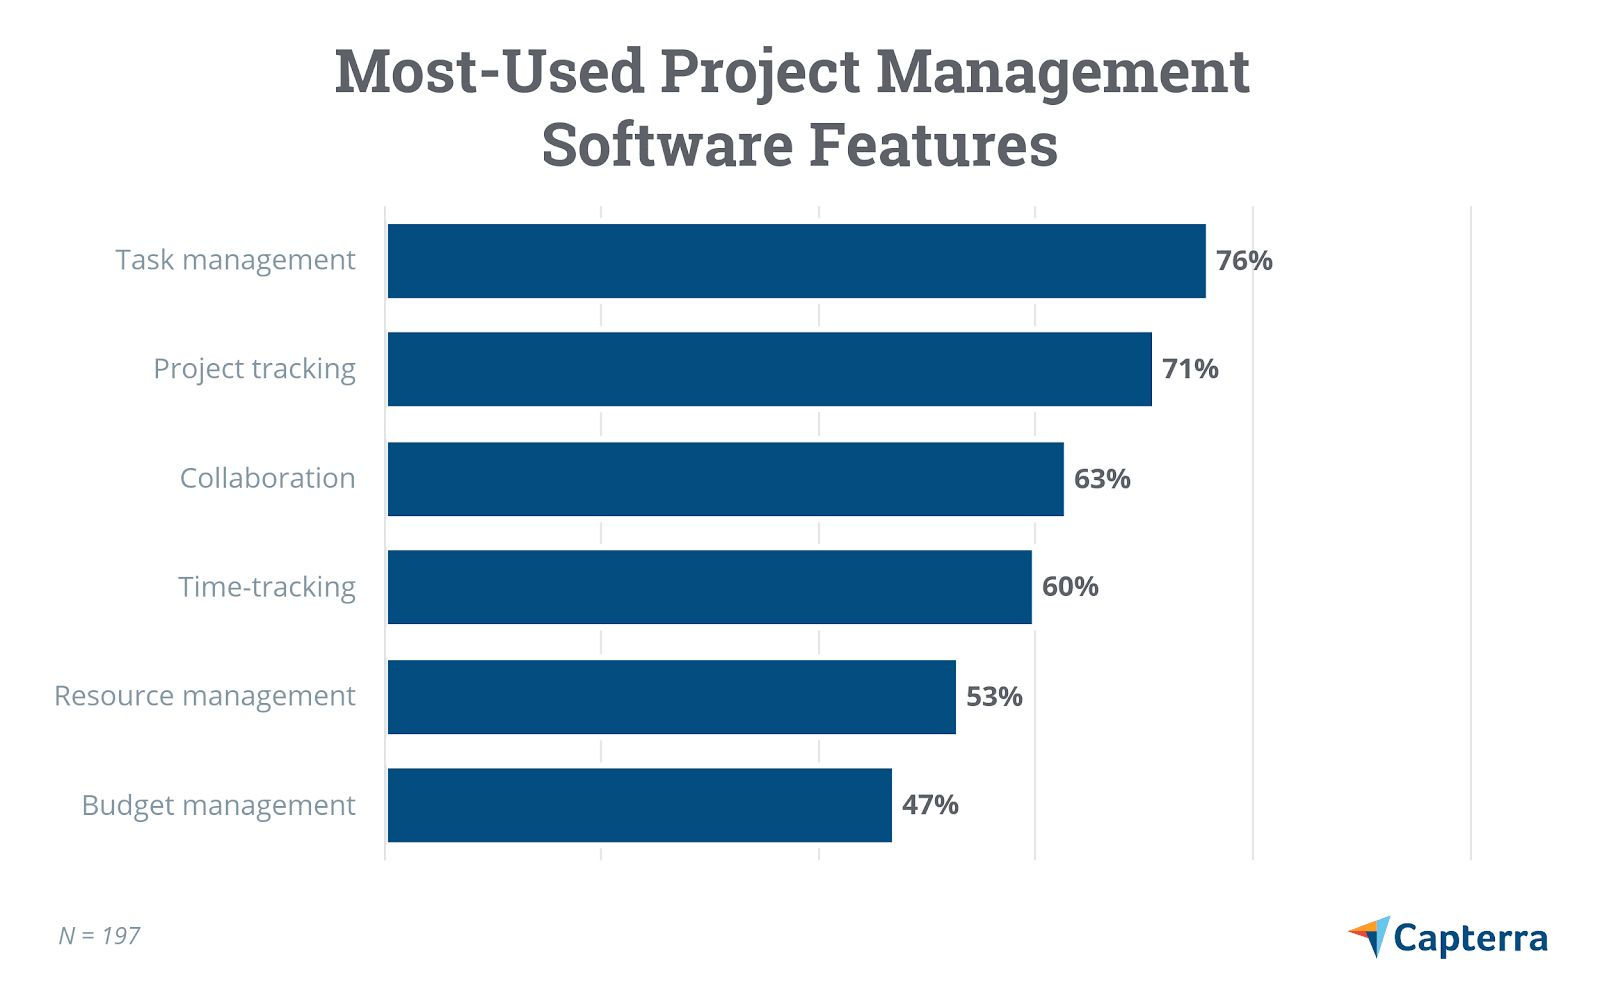 List of most-used features in project management software